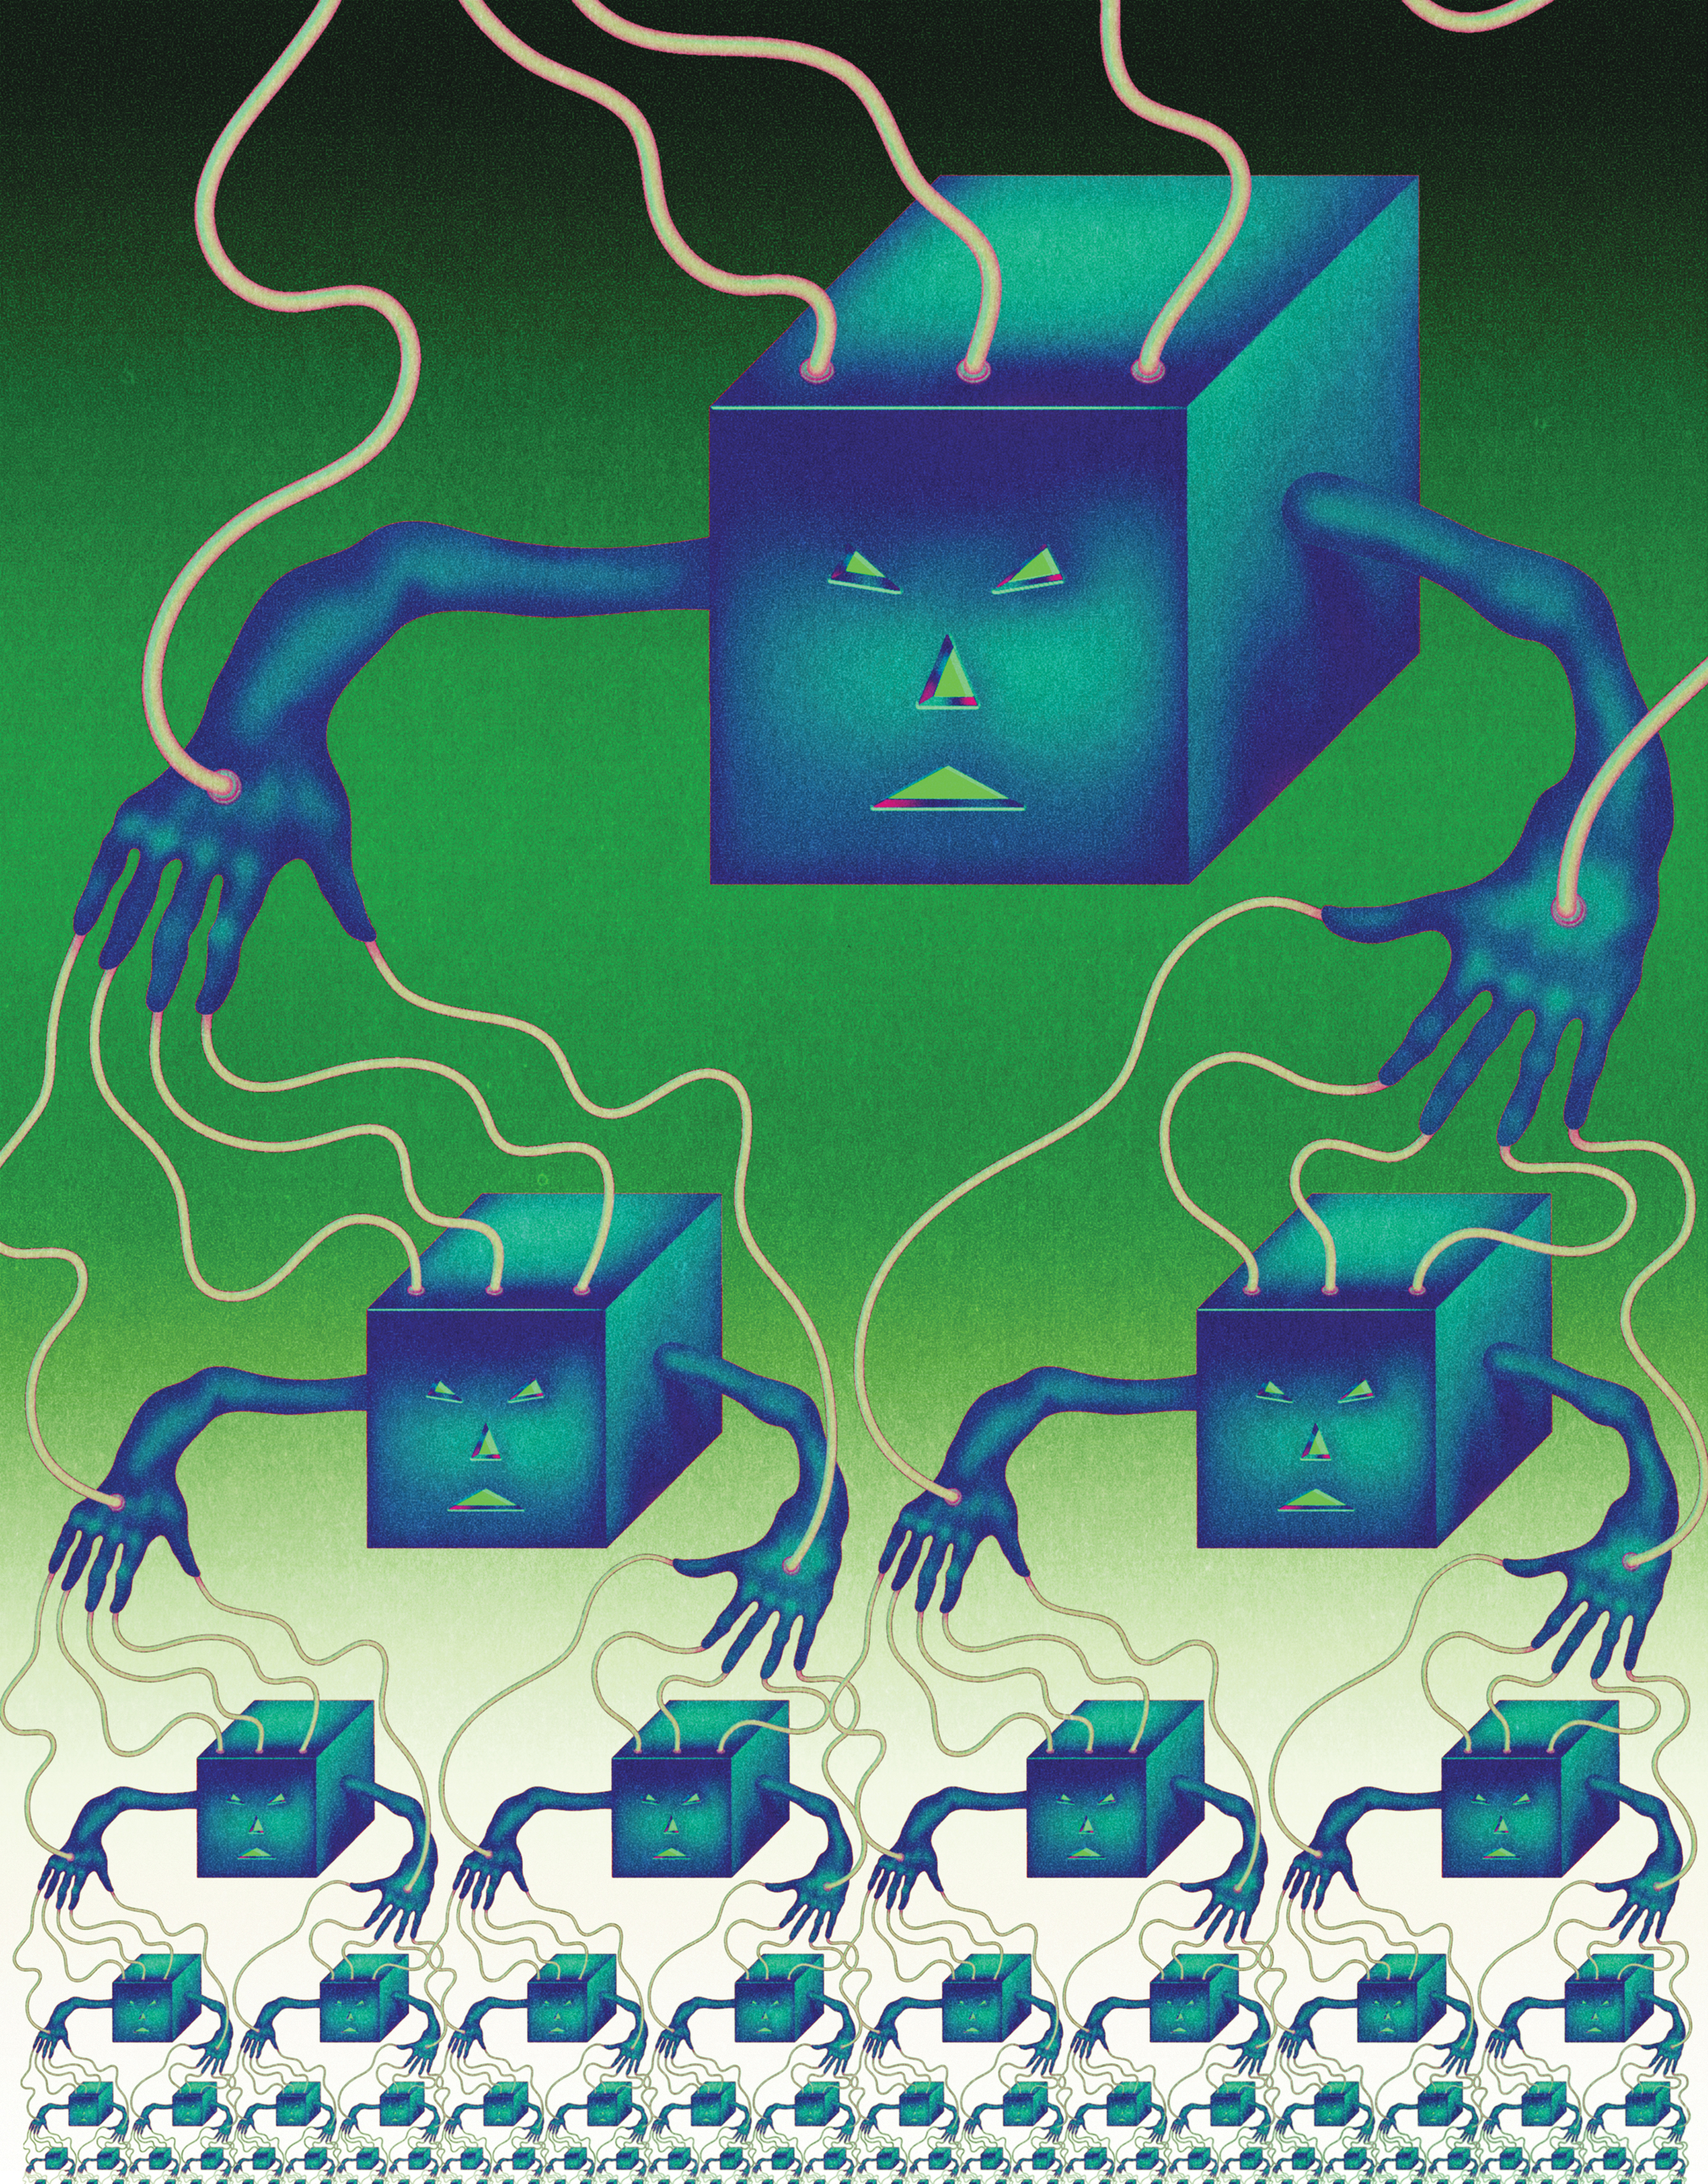 """<b><a href=""""https://www.technologyreview.com/s/603500/10-breakthrough-technologies-2017-botnets-of-things/"""">Botnets of Things</a></b> <br> Illustration by Robert Beatty"""